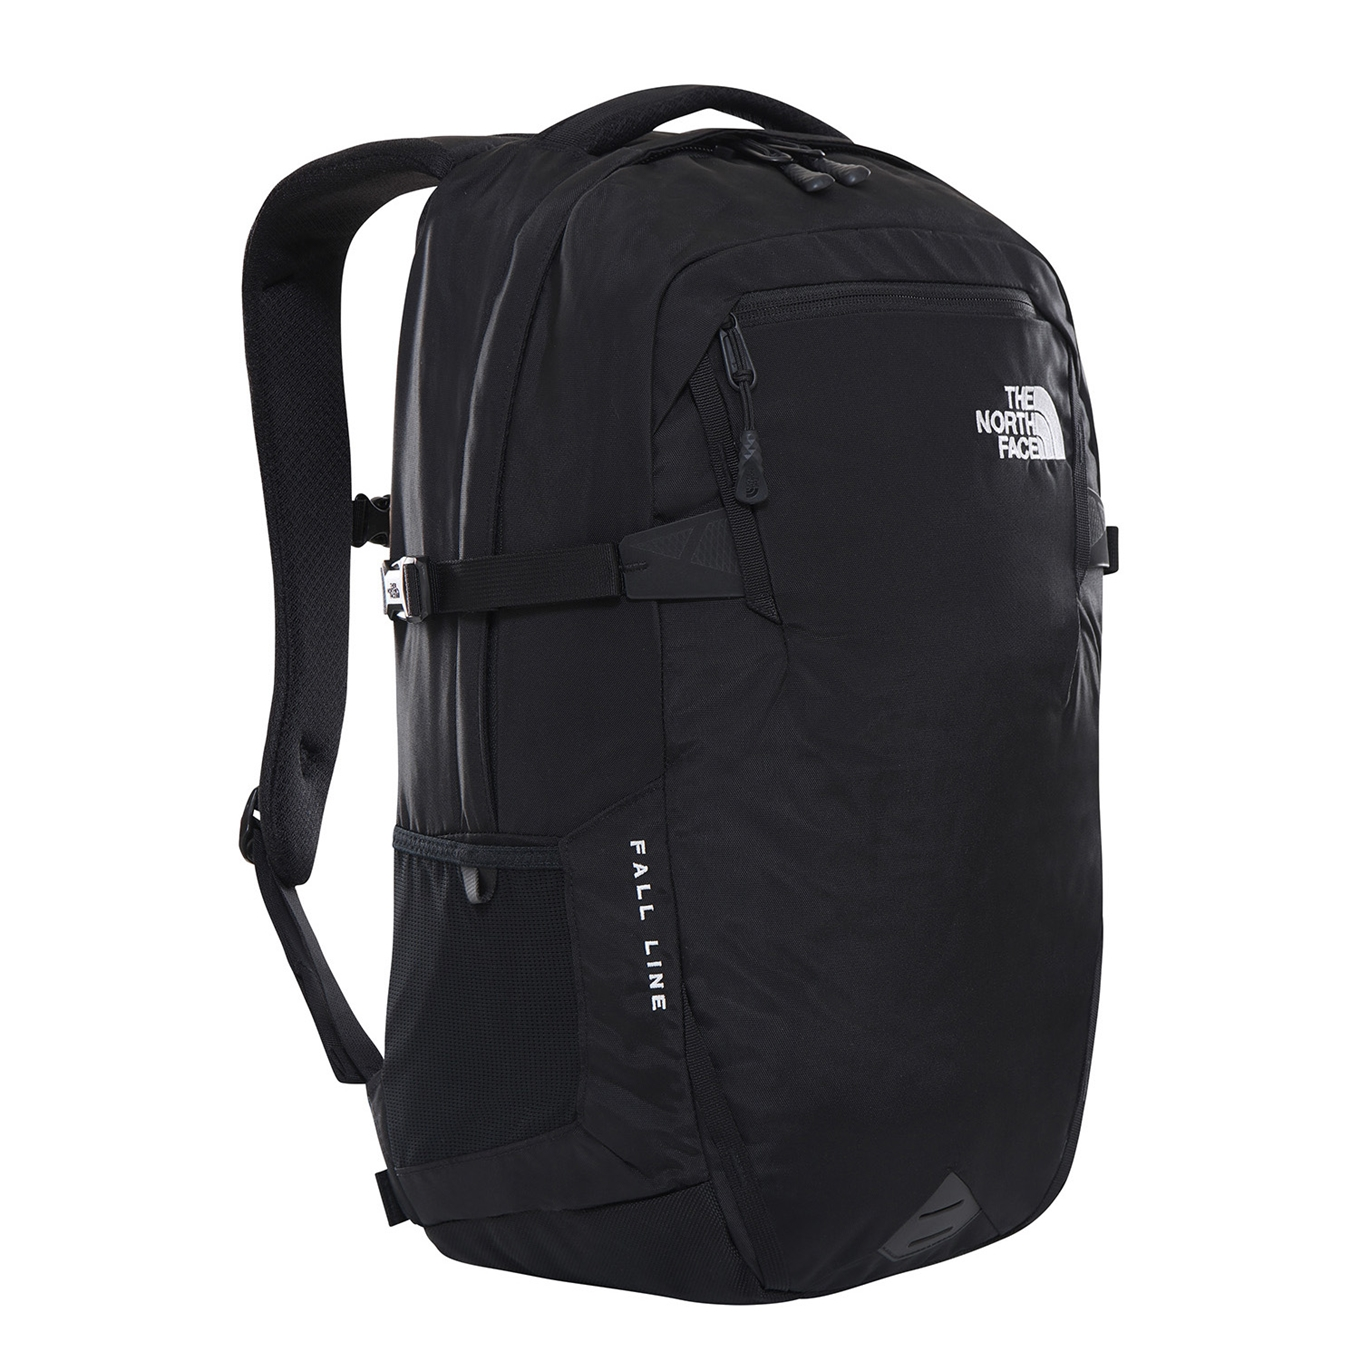 The North Face Fall Line Backpack black backpack